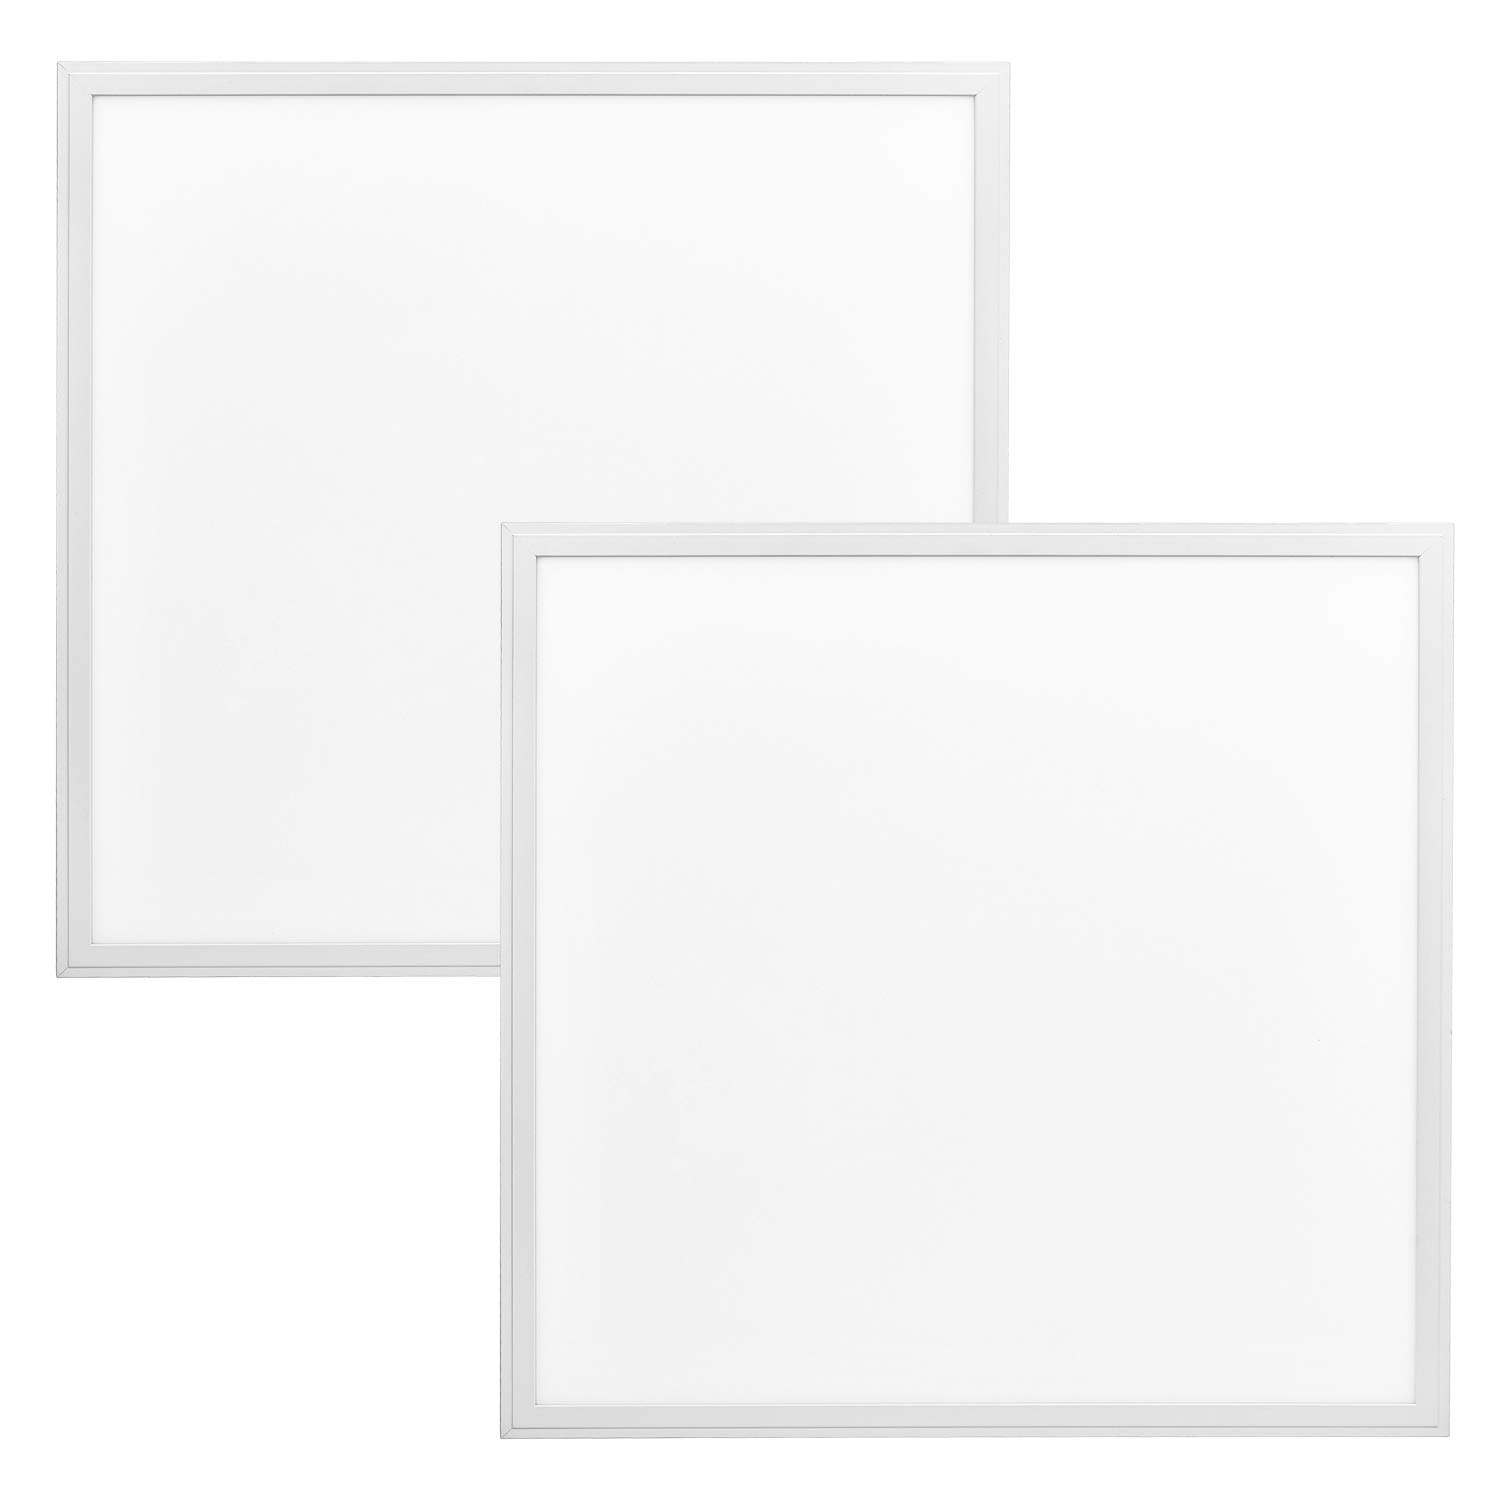 Luxrite LED Light Panel, 2x2 FT, 40W, 5000K Bright White, 4300 Lumens, 24x24 Inch LED Flat Panel, 0-10V Dimmable, DLC Listed, UL Listed, Pack of 2